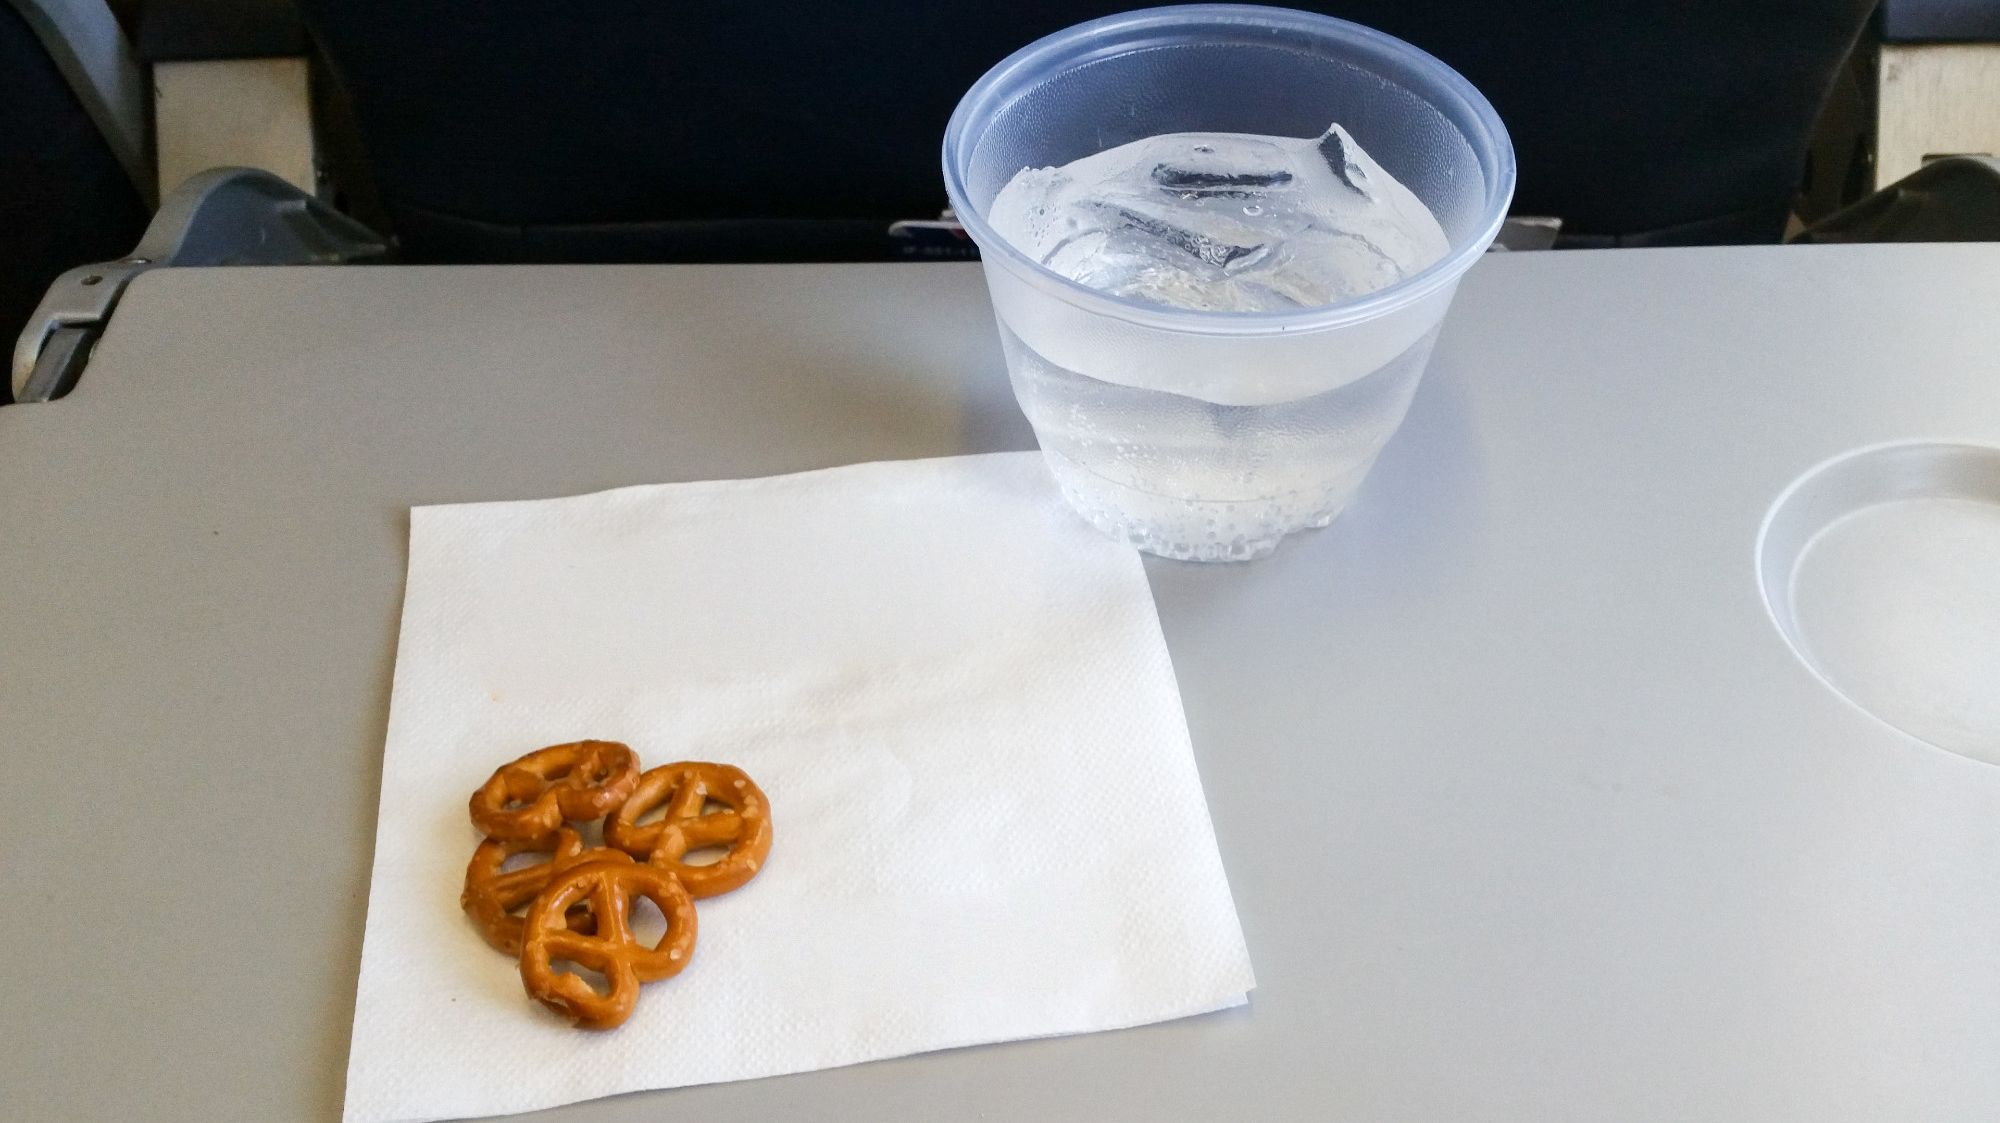 Frequent Travelers Can Get Their Mile-High Snack Fix With Airplane Food at Home